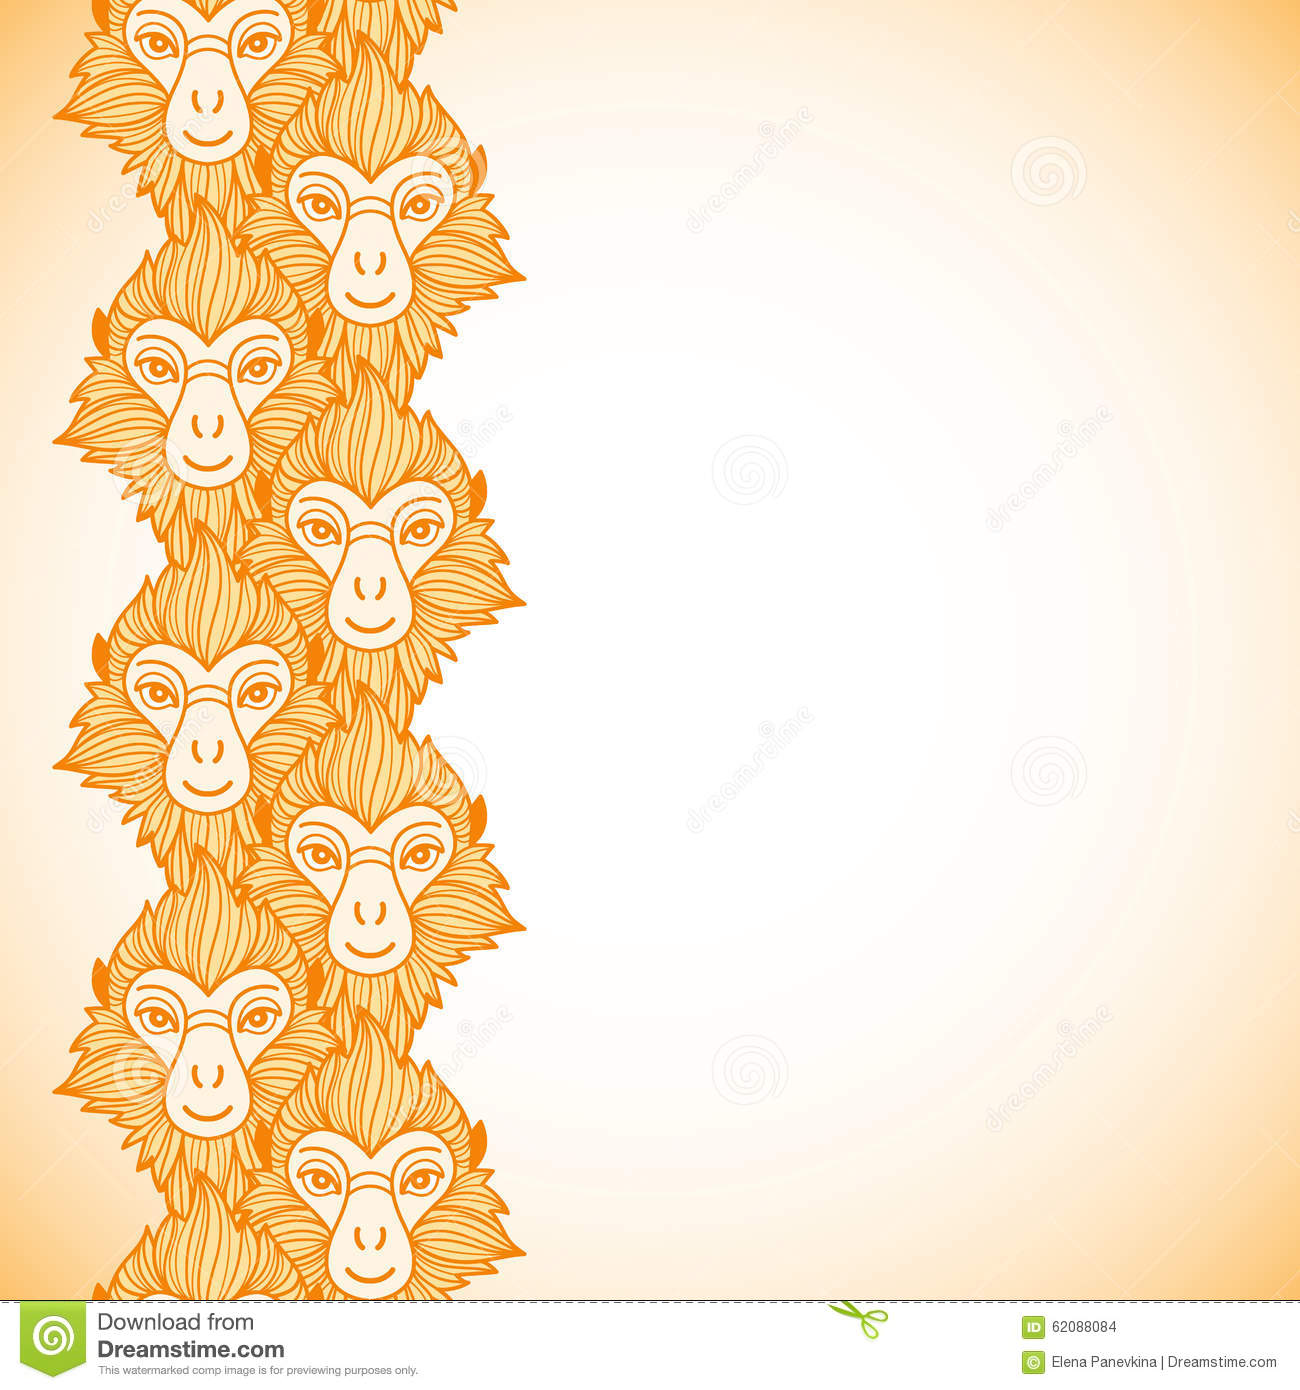 monkey heads new year vertical border